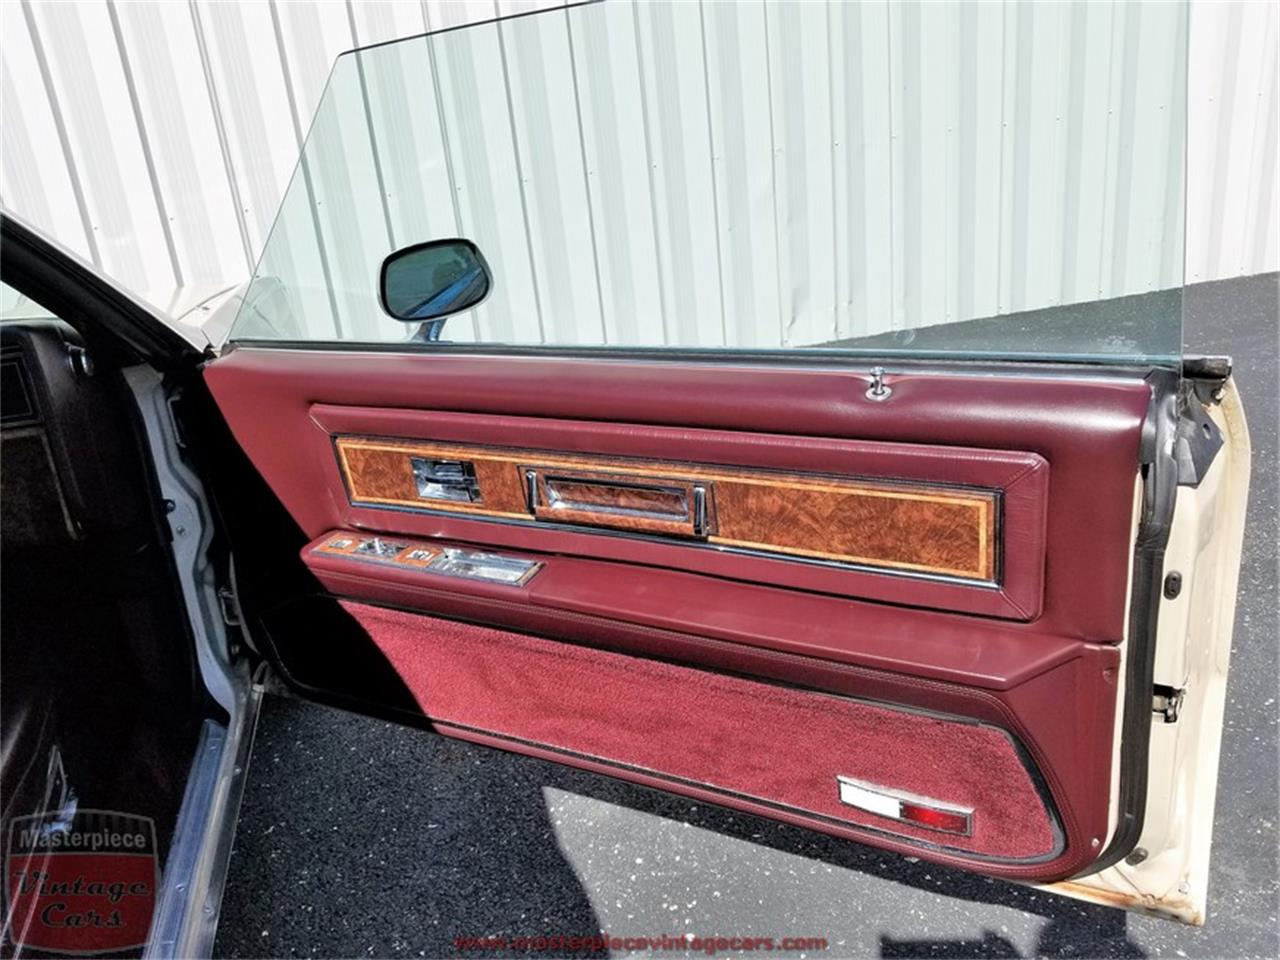 Large Picture of 1985 Toronado located in Indiana Offered by Masterpiece Vintage Cars - Q4ZA